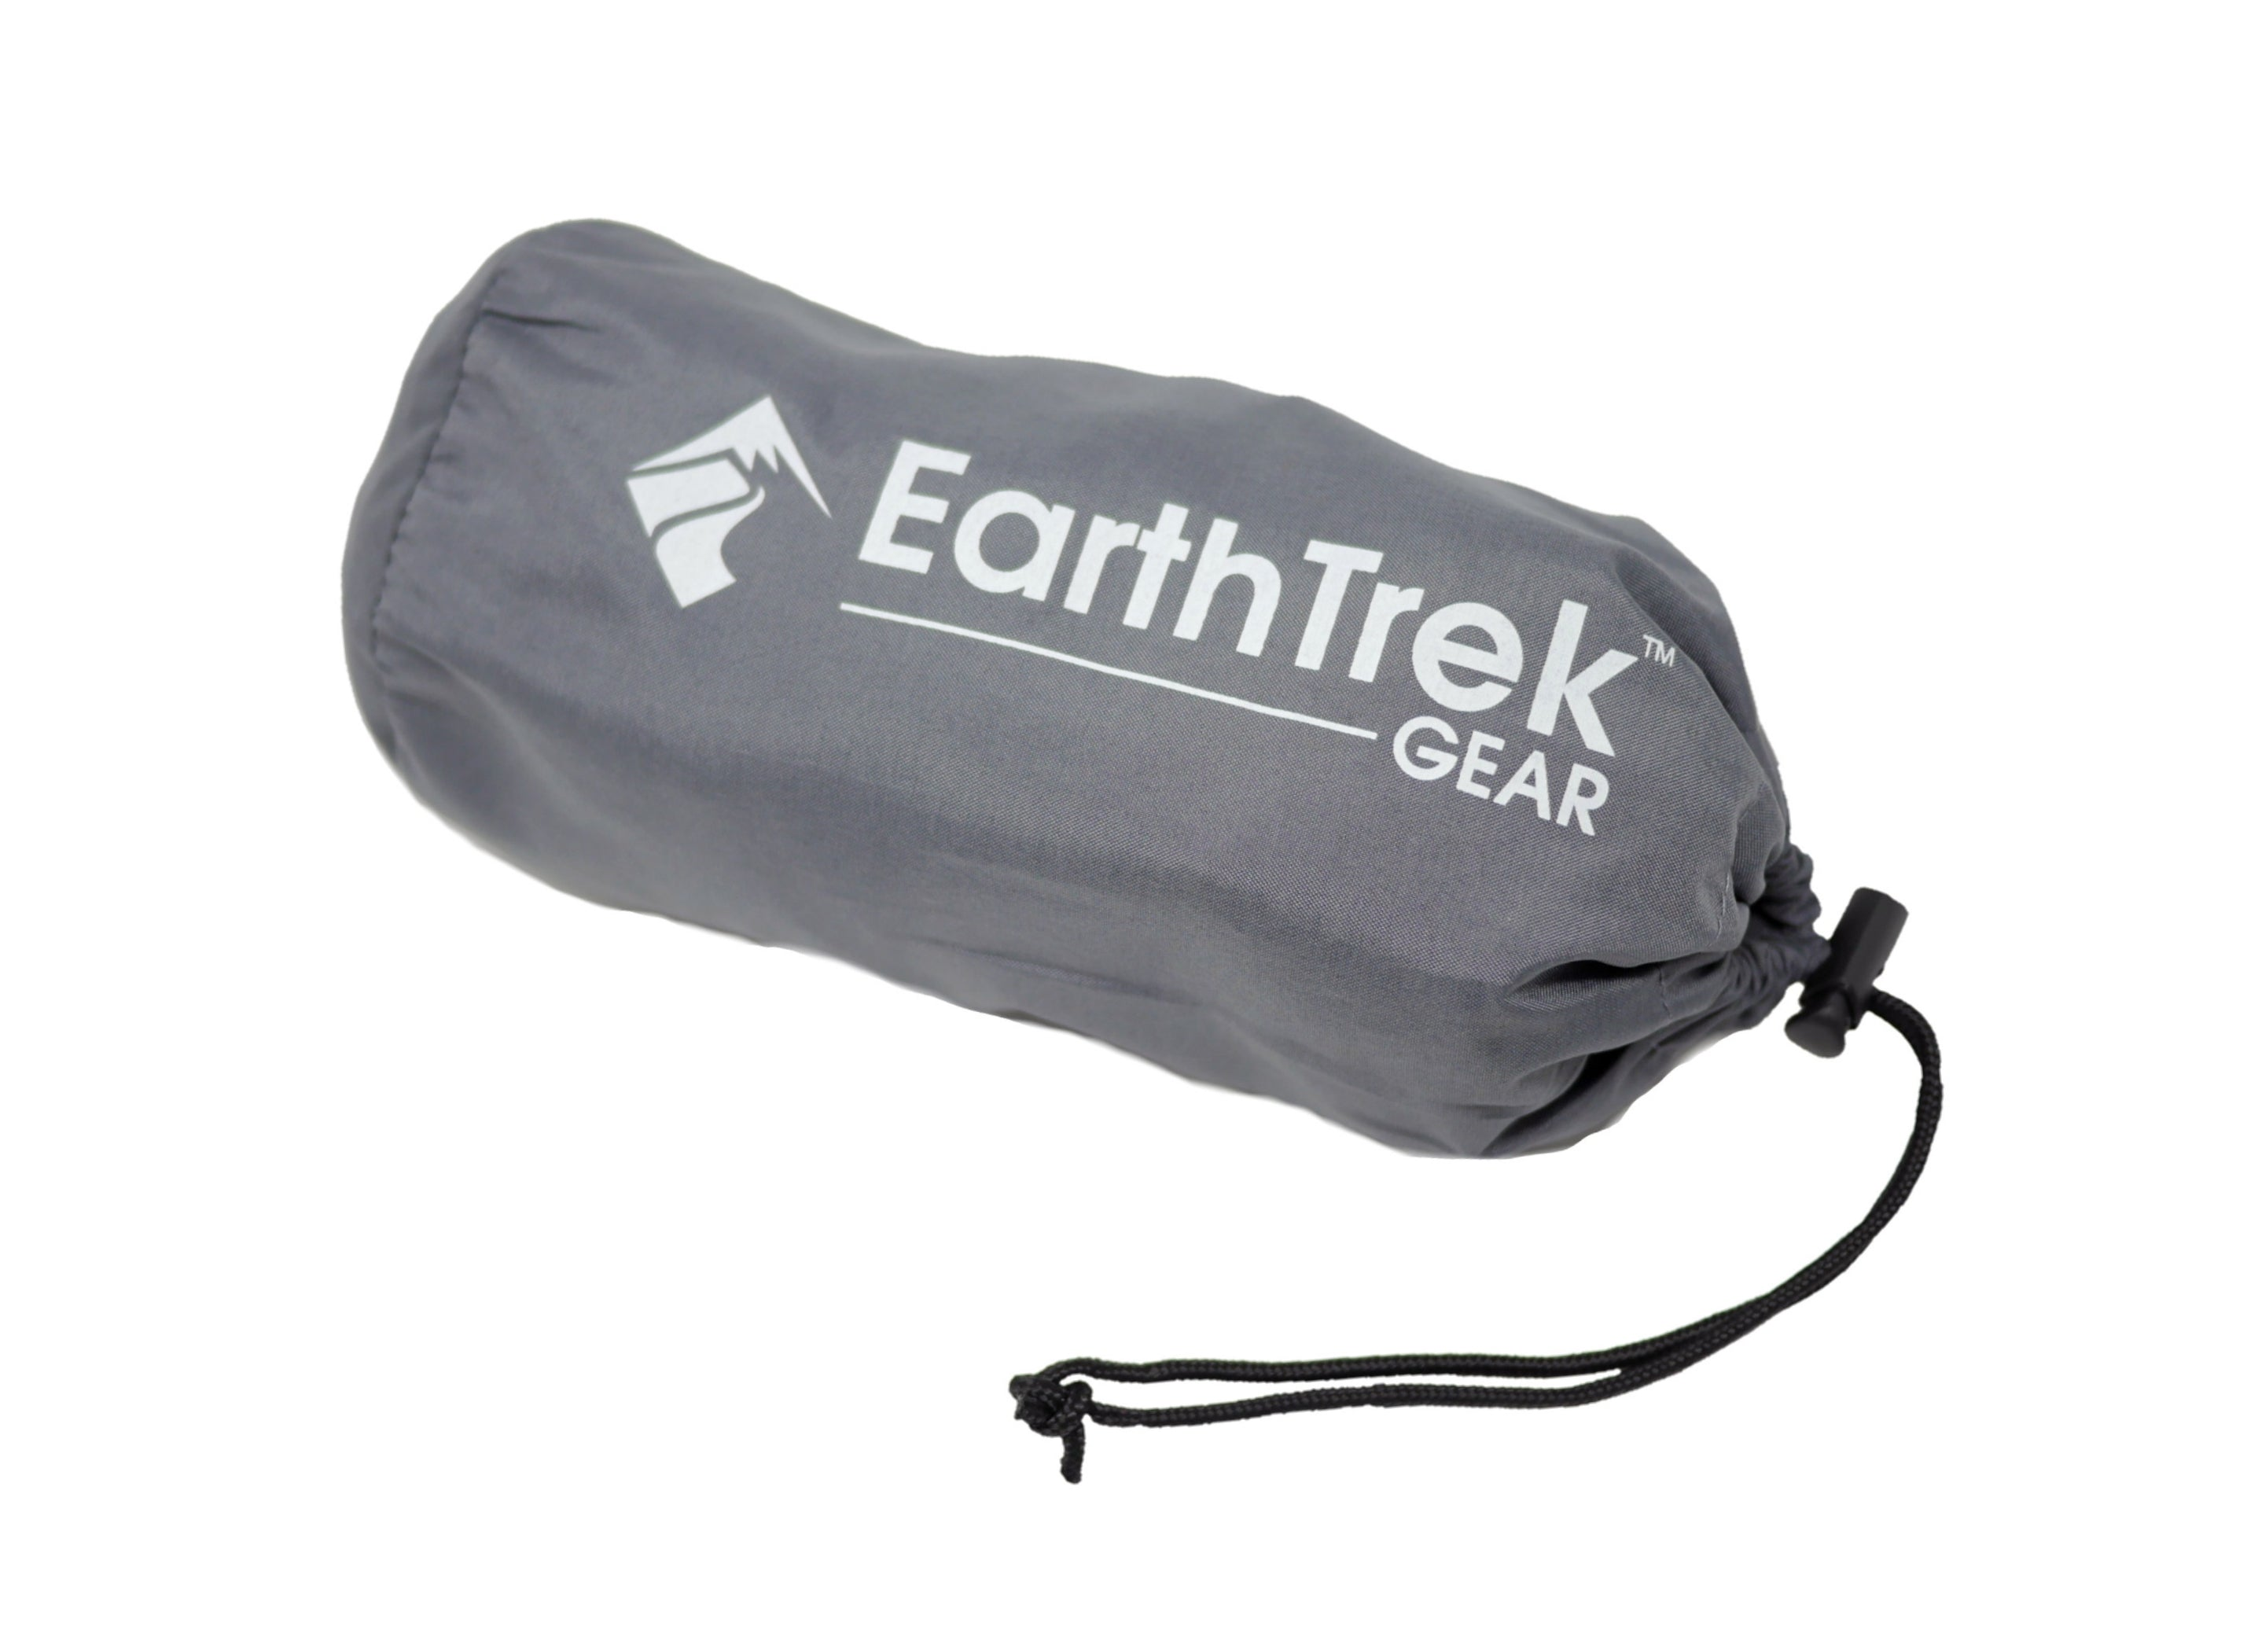 EarthTrek Zippered Extra Large Sleeping Bag Travel Liner